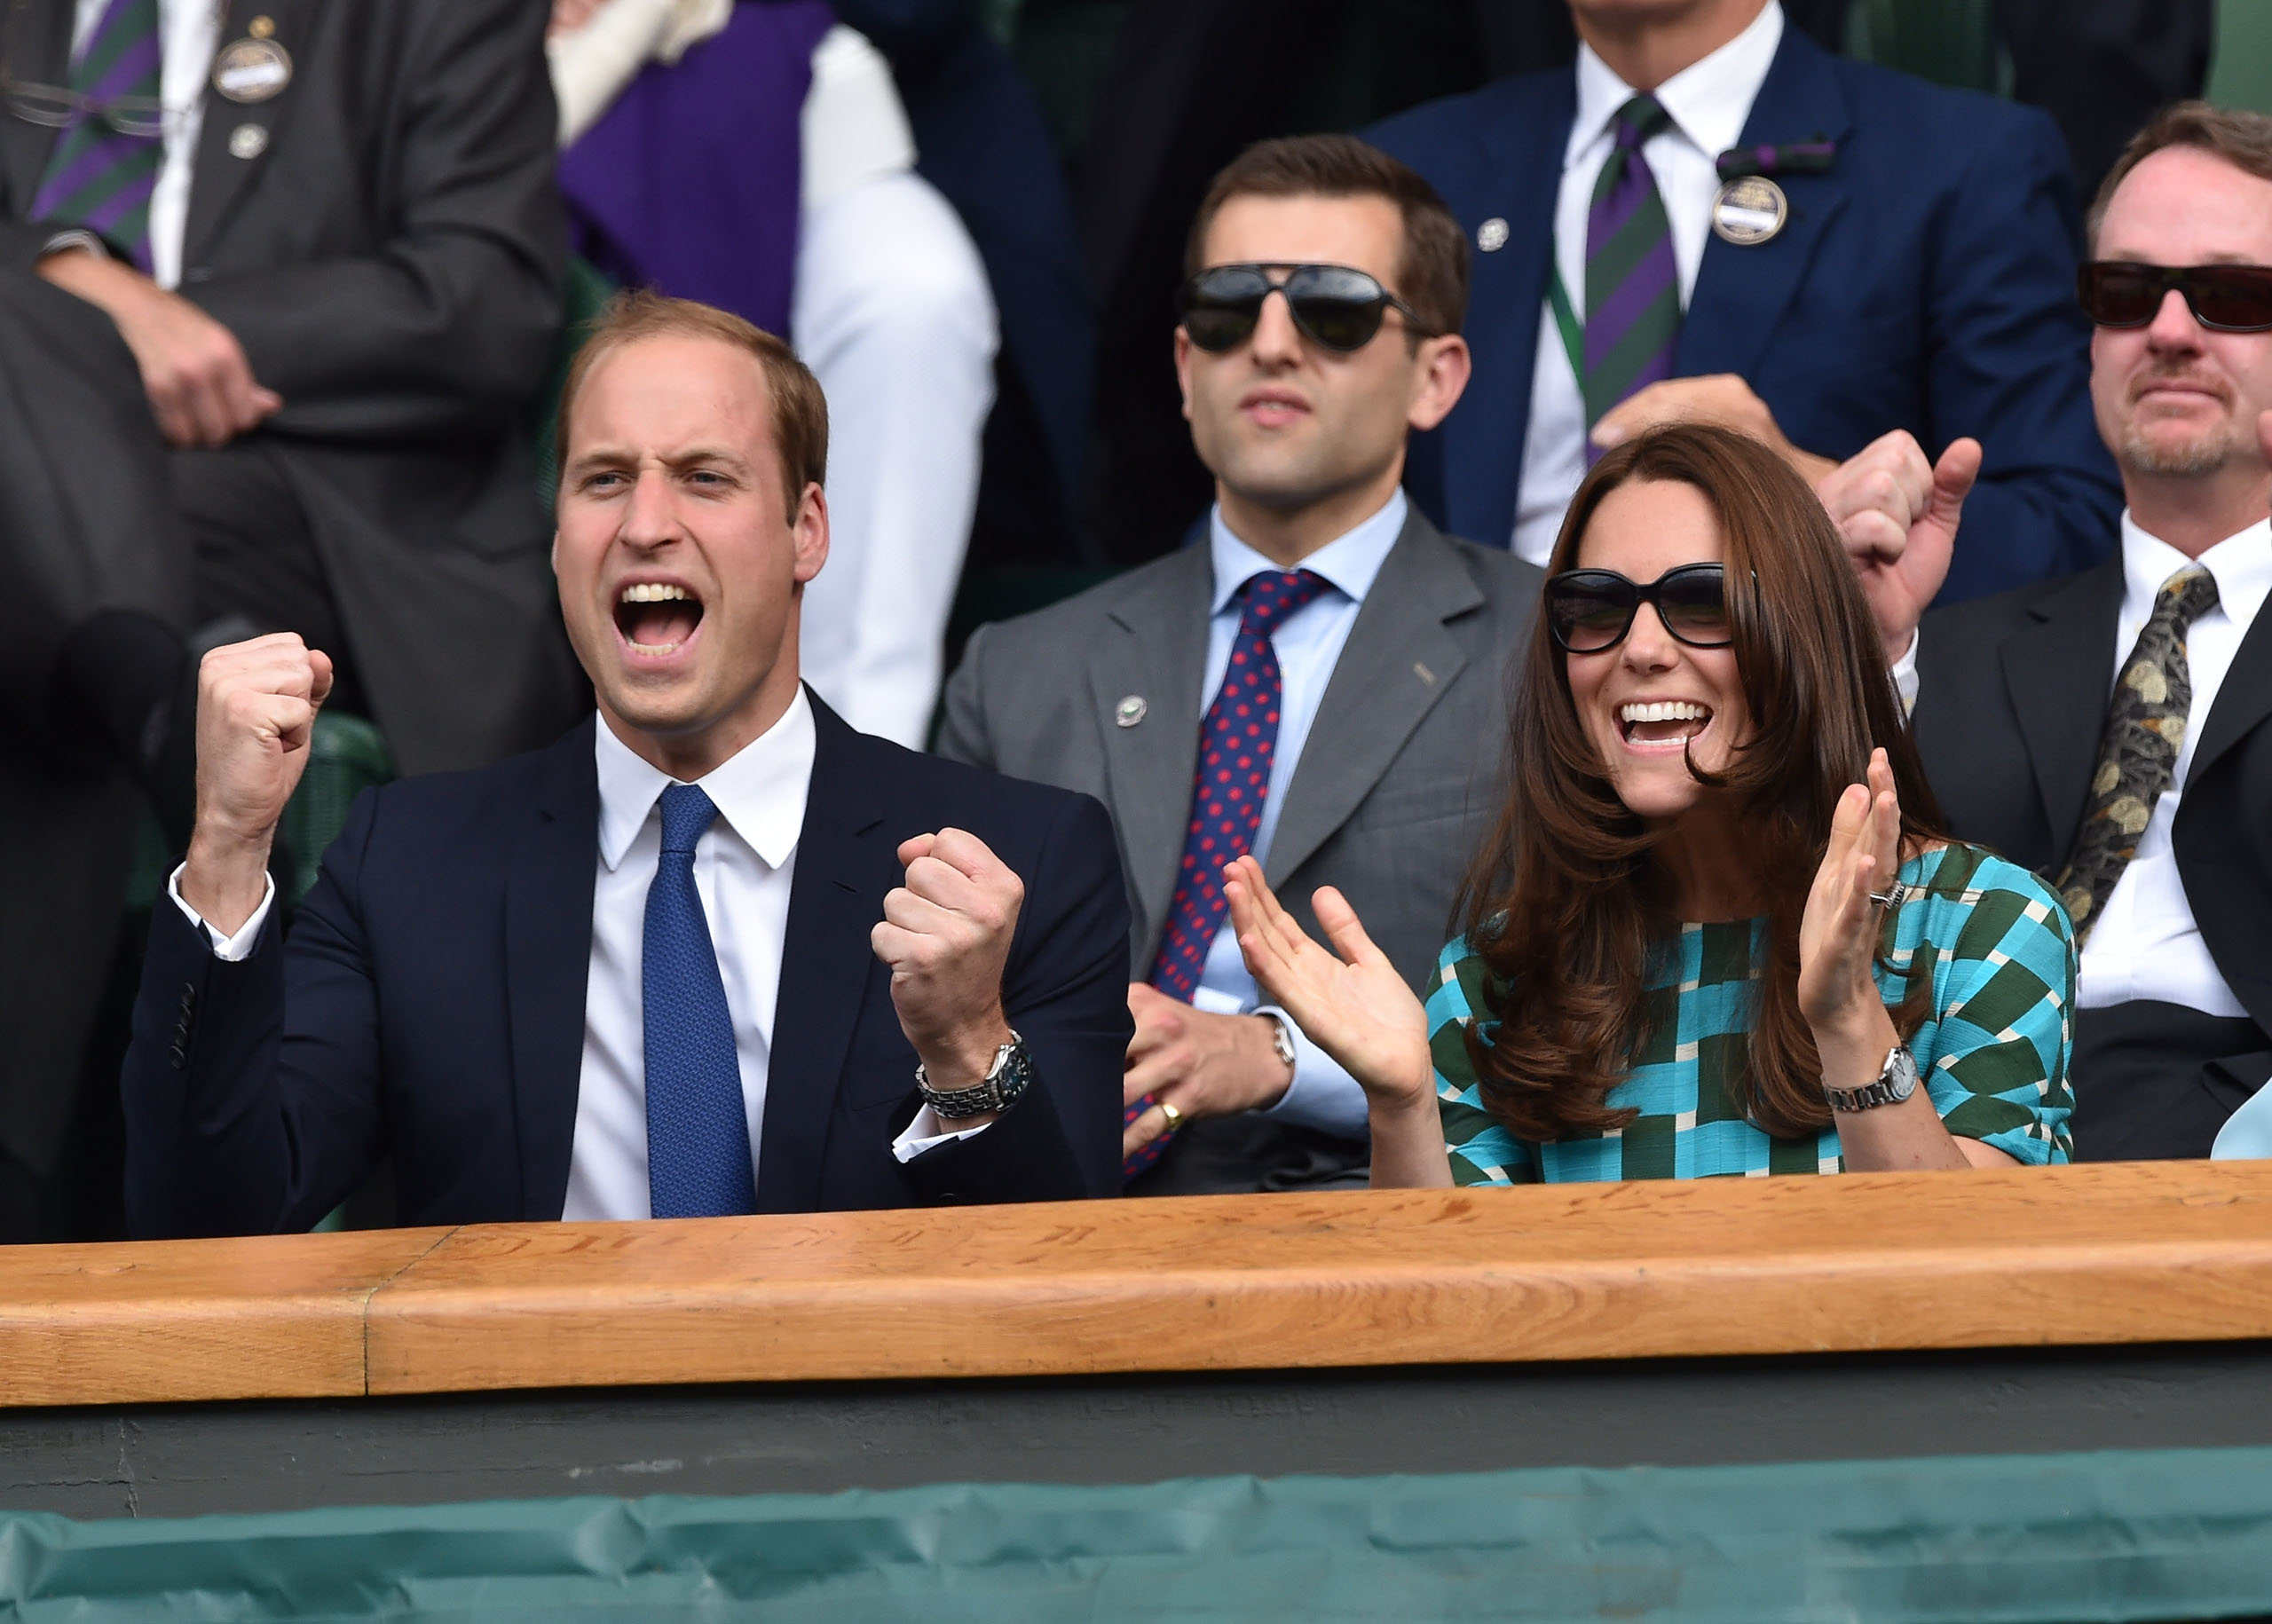 Catherine, Duchess of Cambridge and Prince William, Duke of Cambridge, attend the mens singles final between Novak Djokovic and Roger Federer on centre court during day thirteen of the Wimbledon Championships at Wimbledon  in London on July 6, 2014.